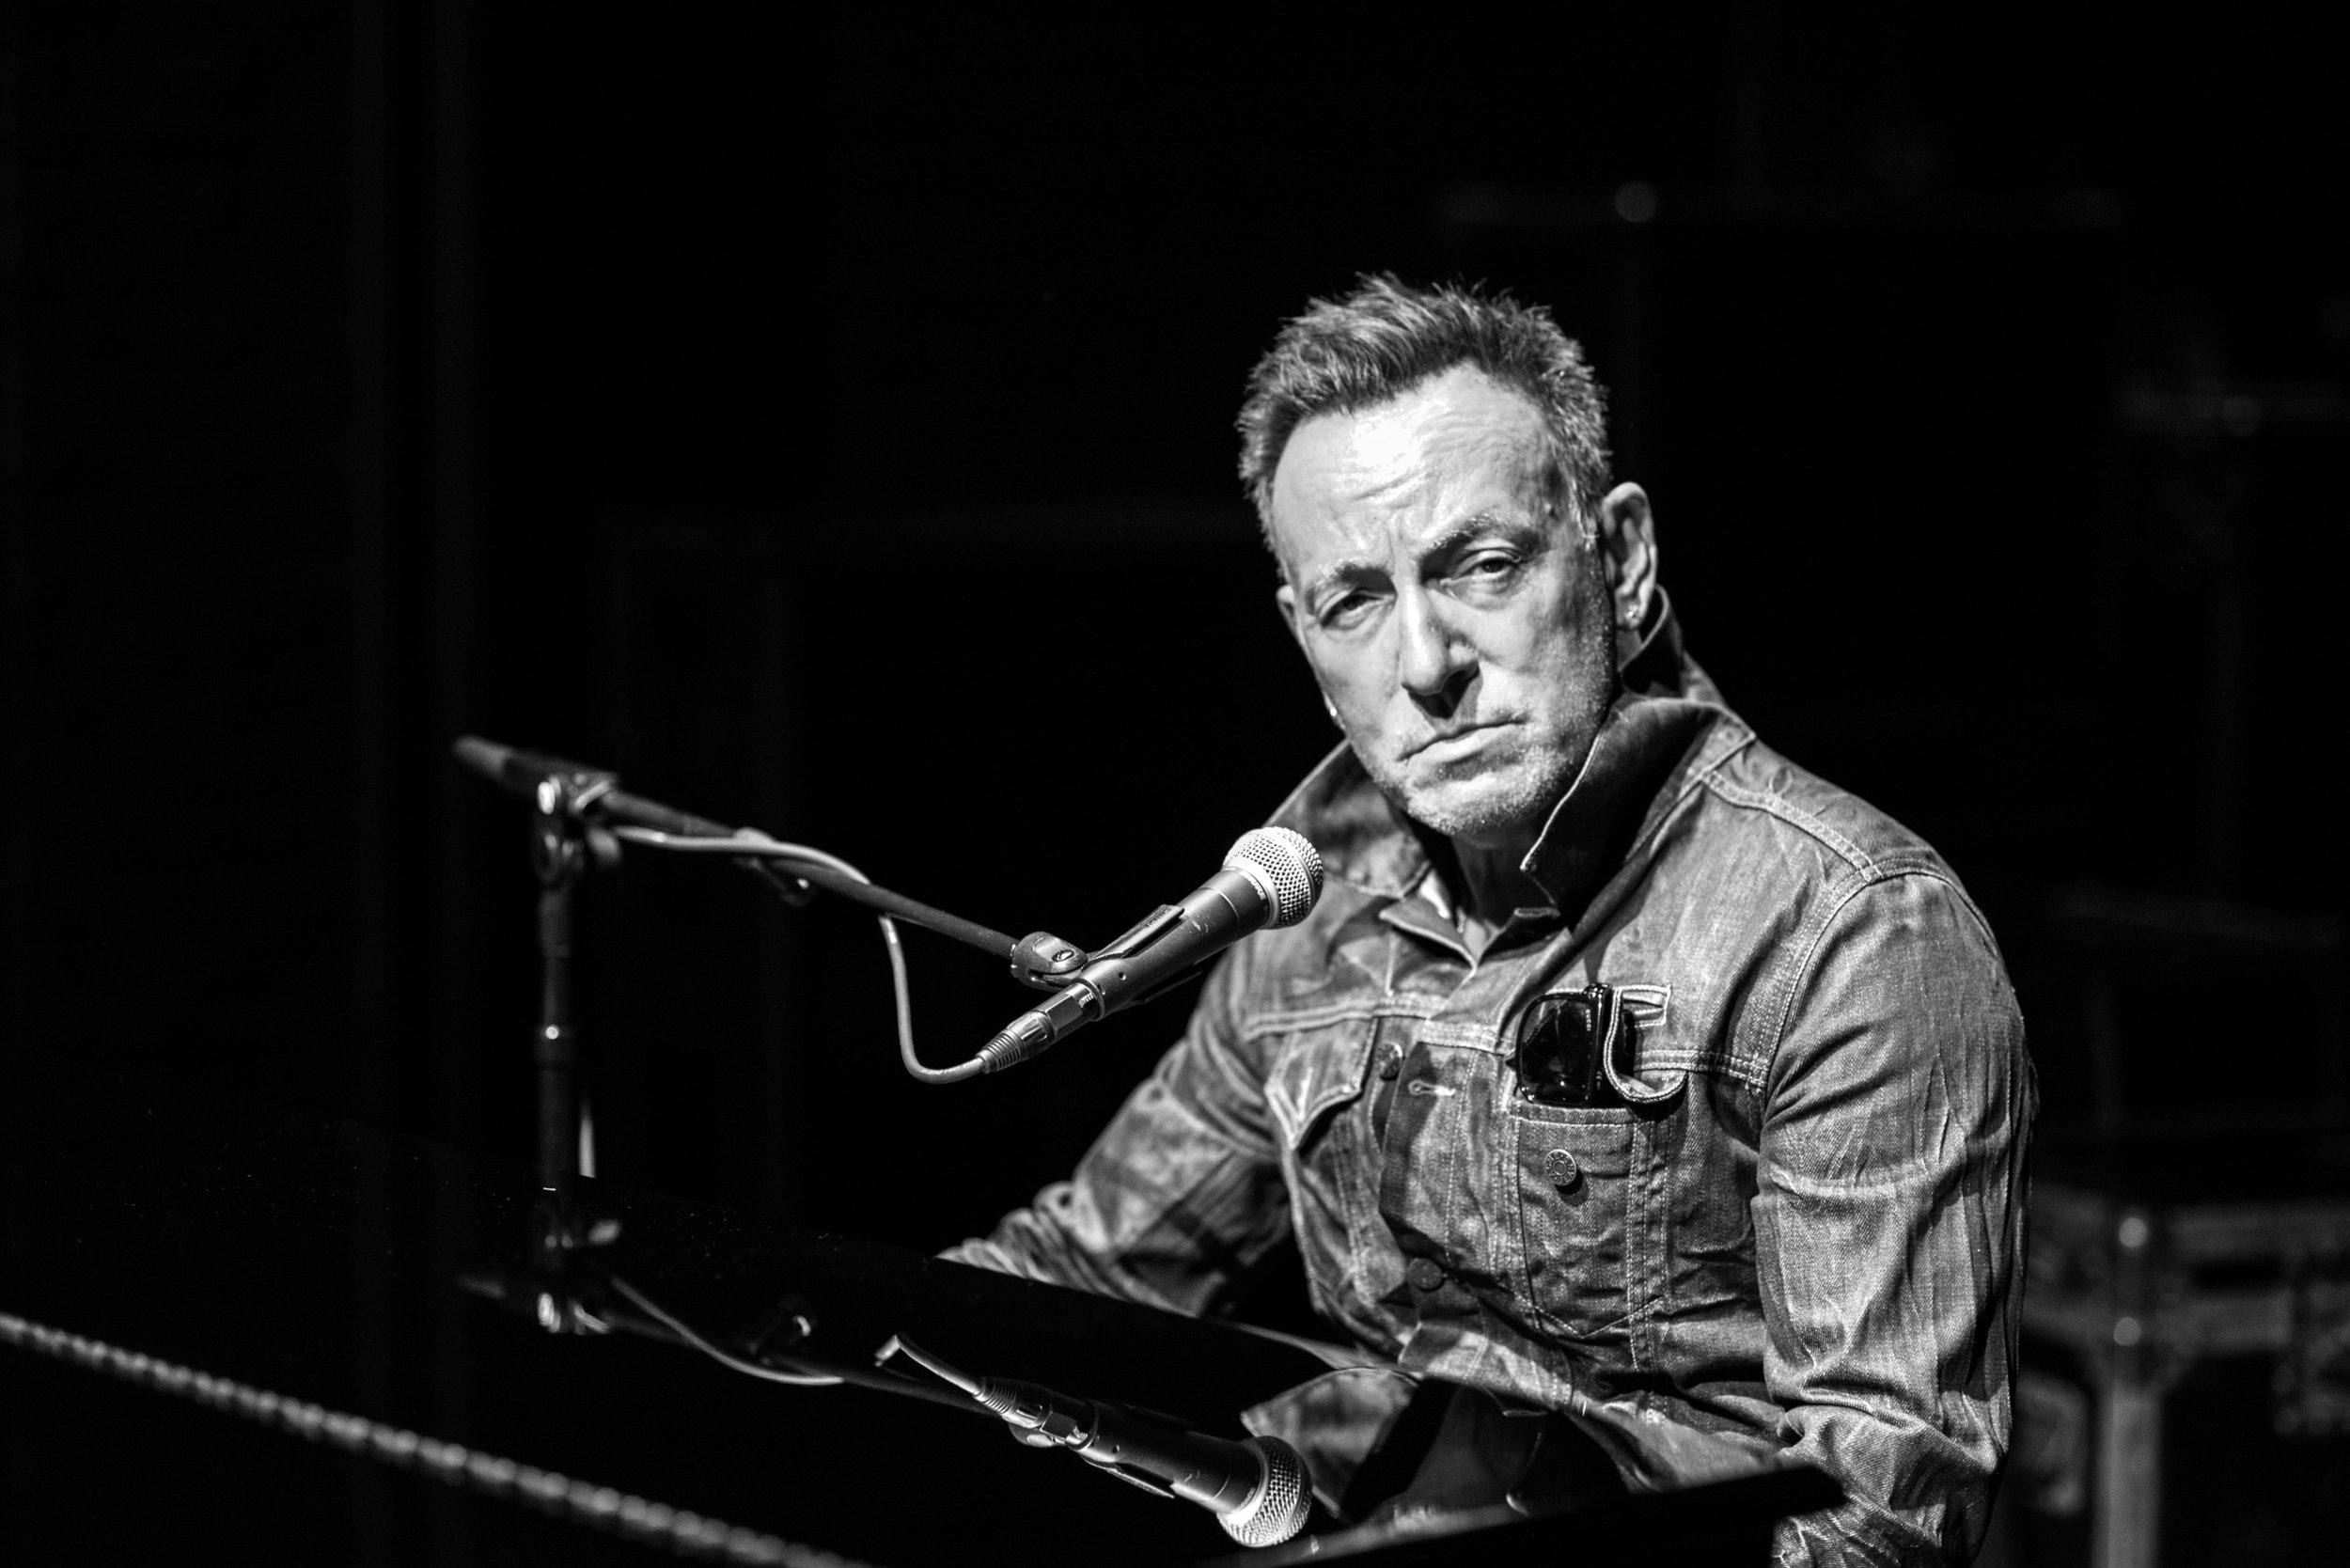 Bruce Springsteen, songwriter - The RisingJuly 16, 2002